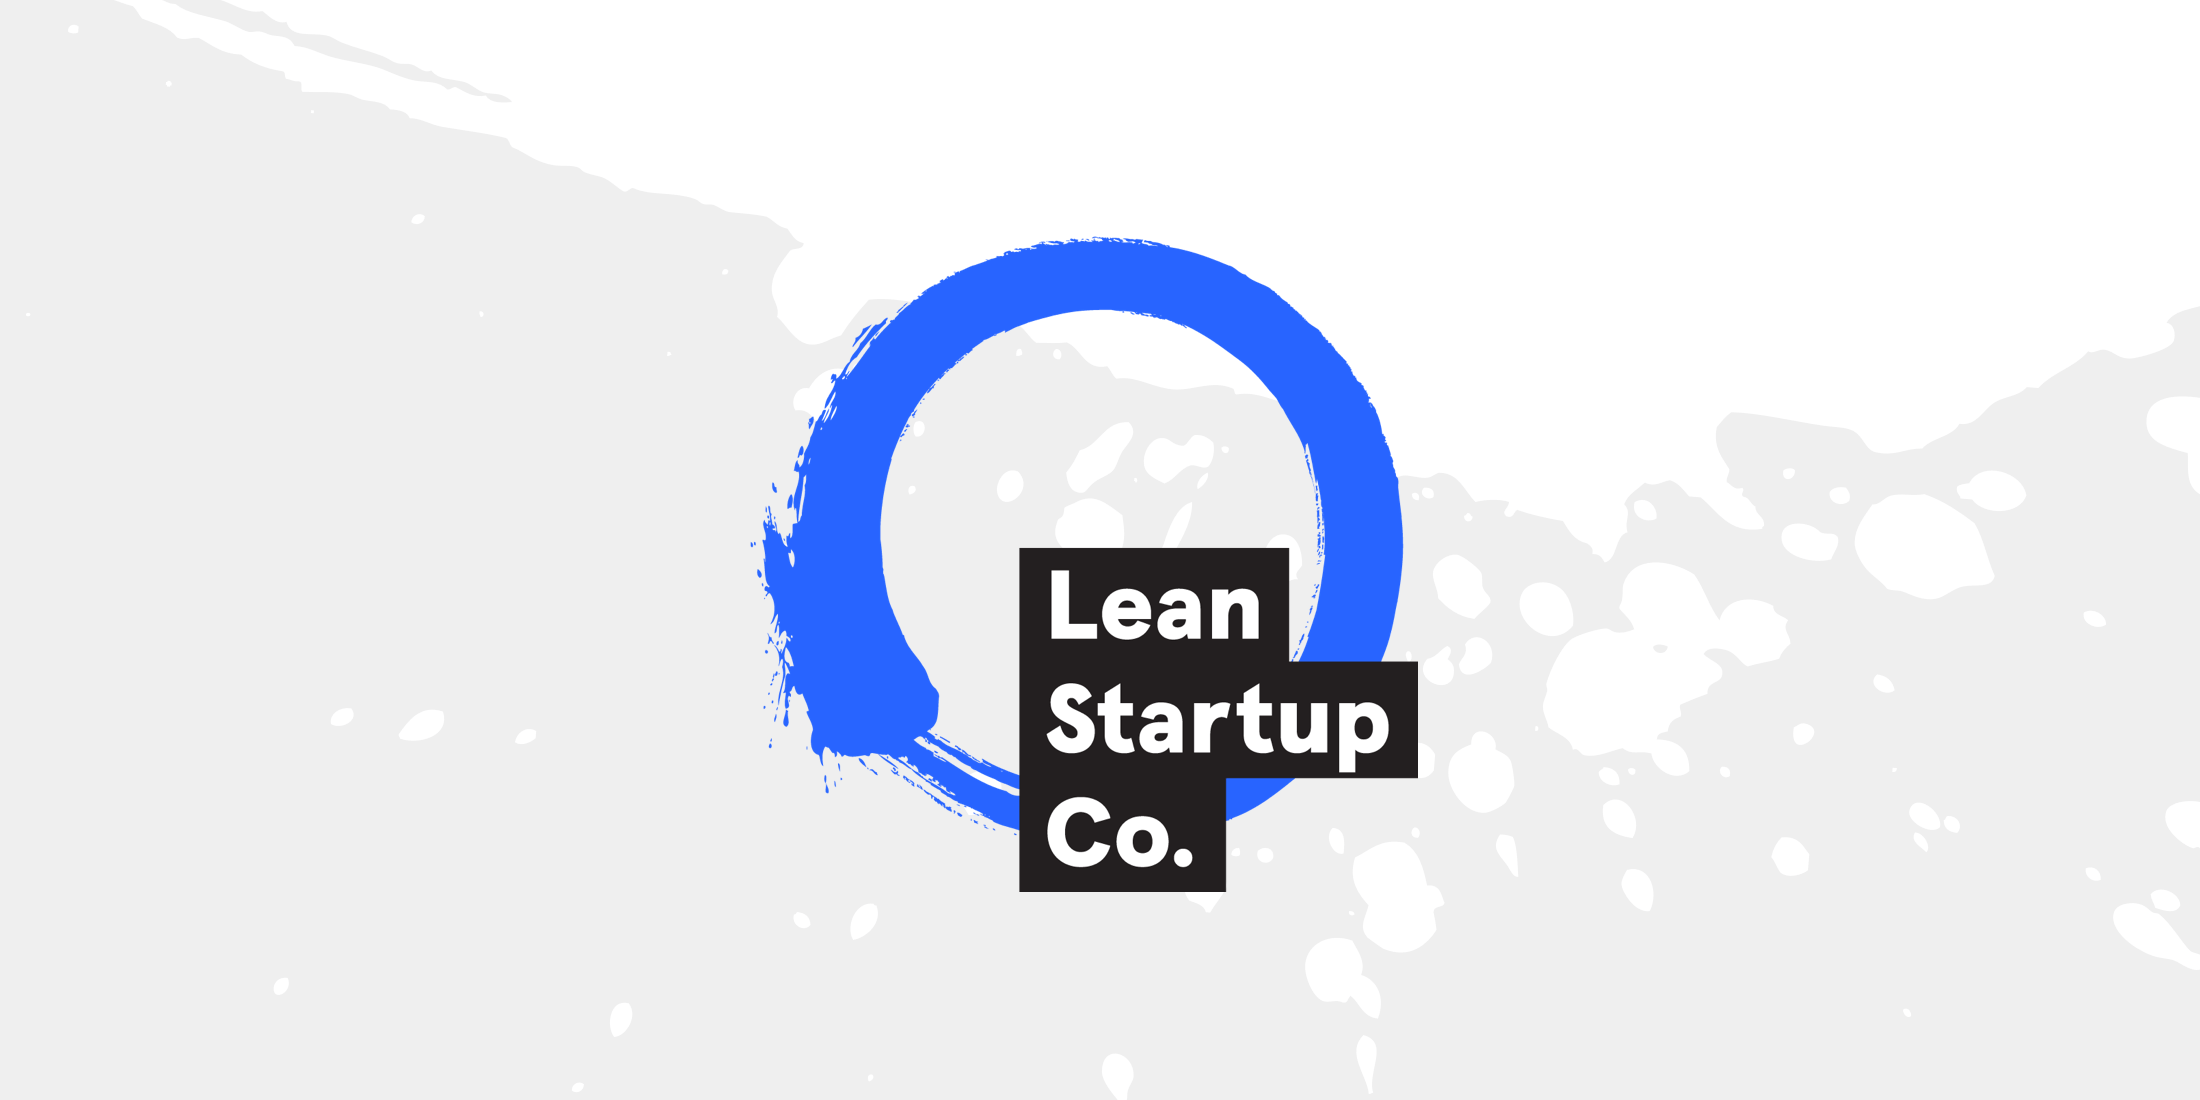 Lean Startup Co. logo, which is a blue enzo